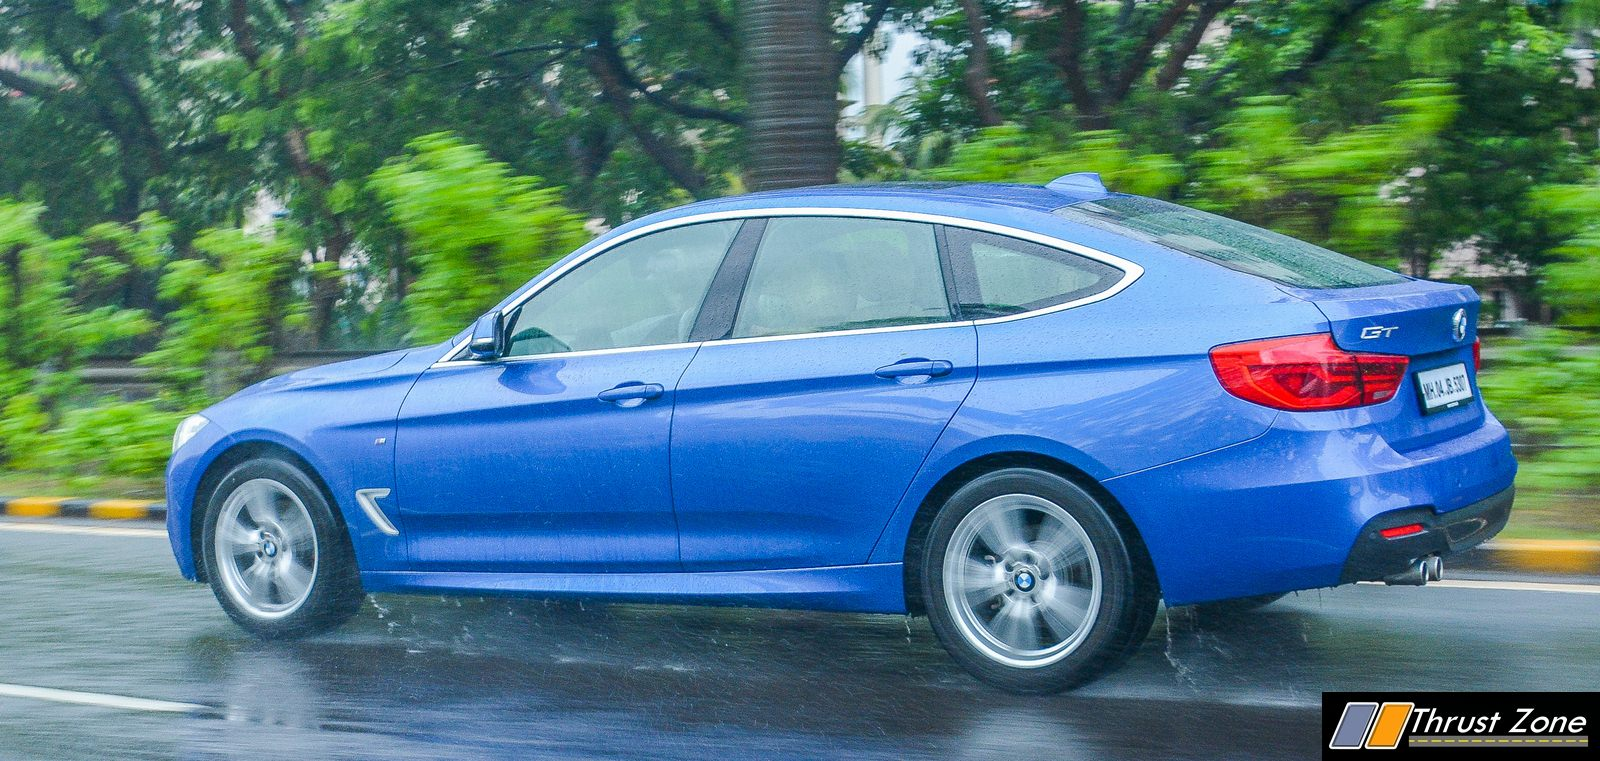 https://www.thrustzone.com/wp-content/uploads/2018/08/2018-BMW-3GT-Petrol-India-Review-5.jpg